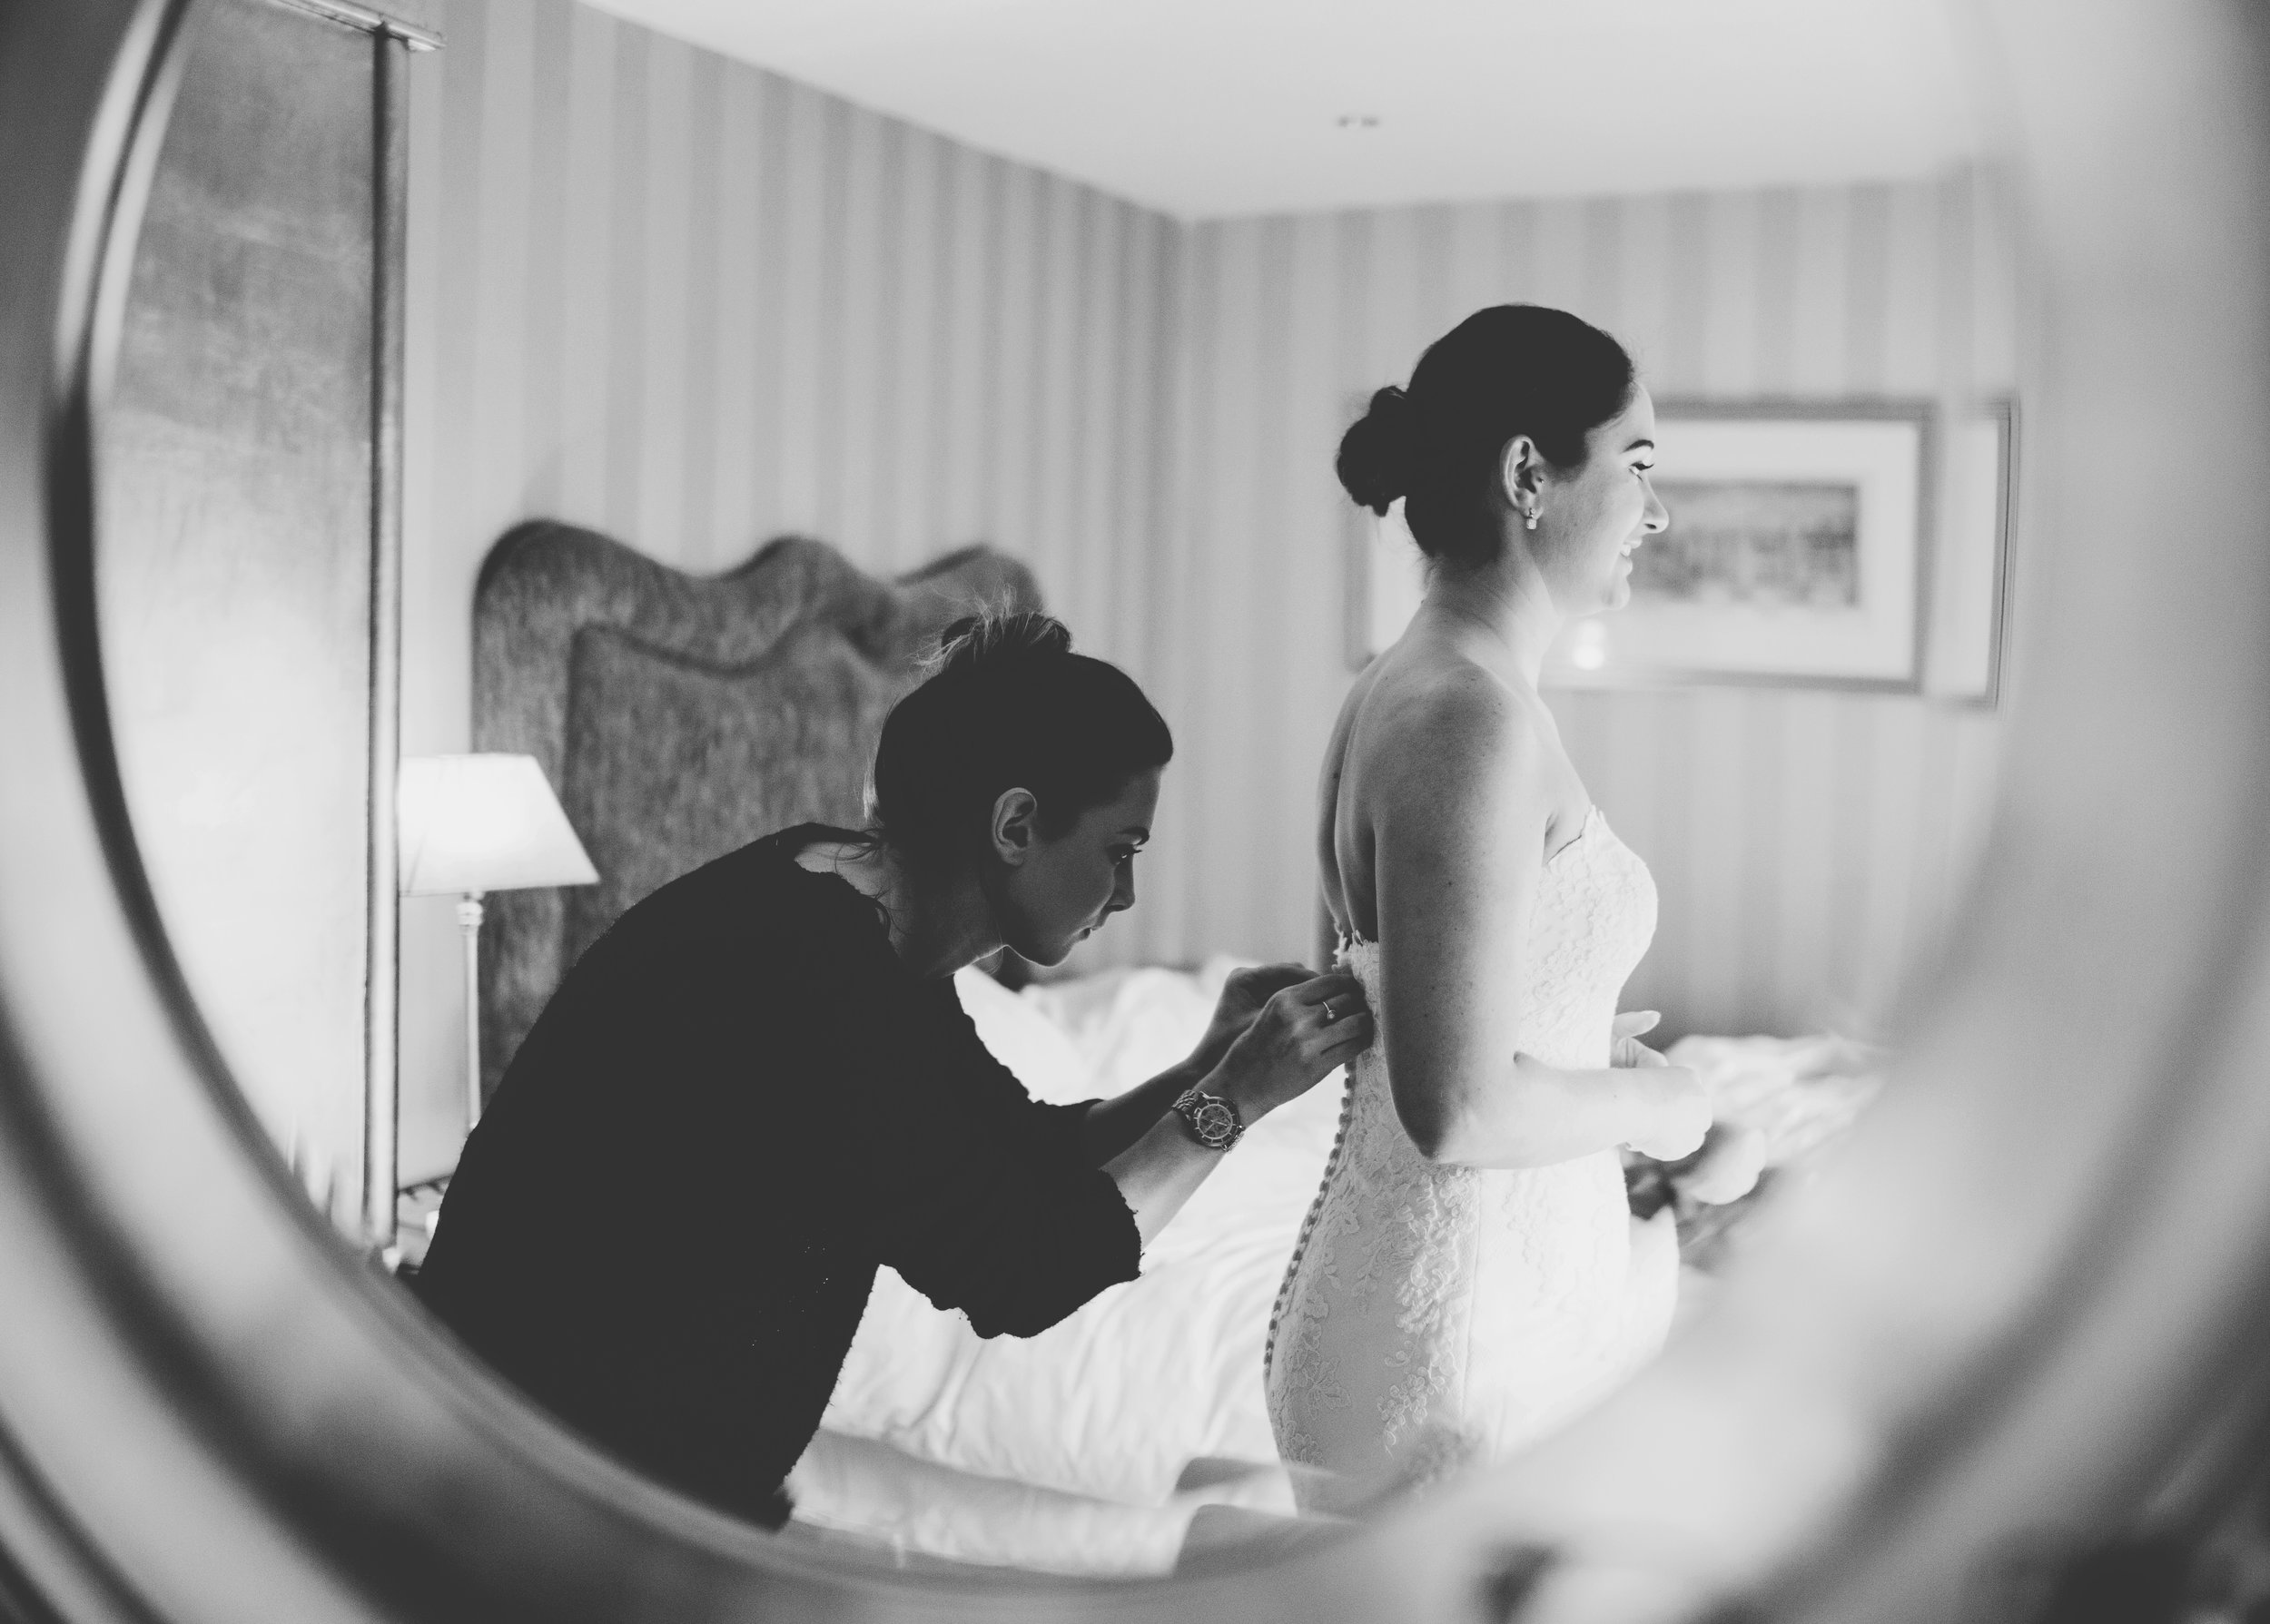 bride getting dressed - creative wedding photography Lancashire